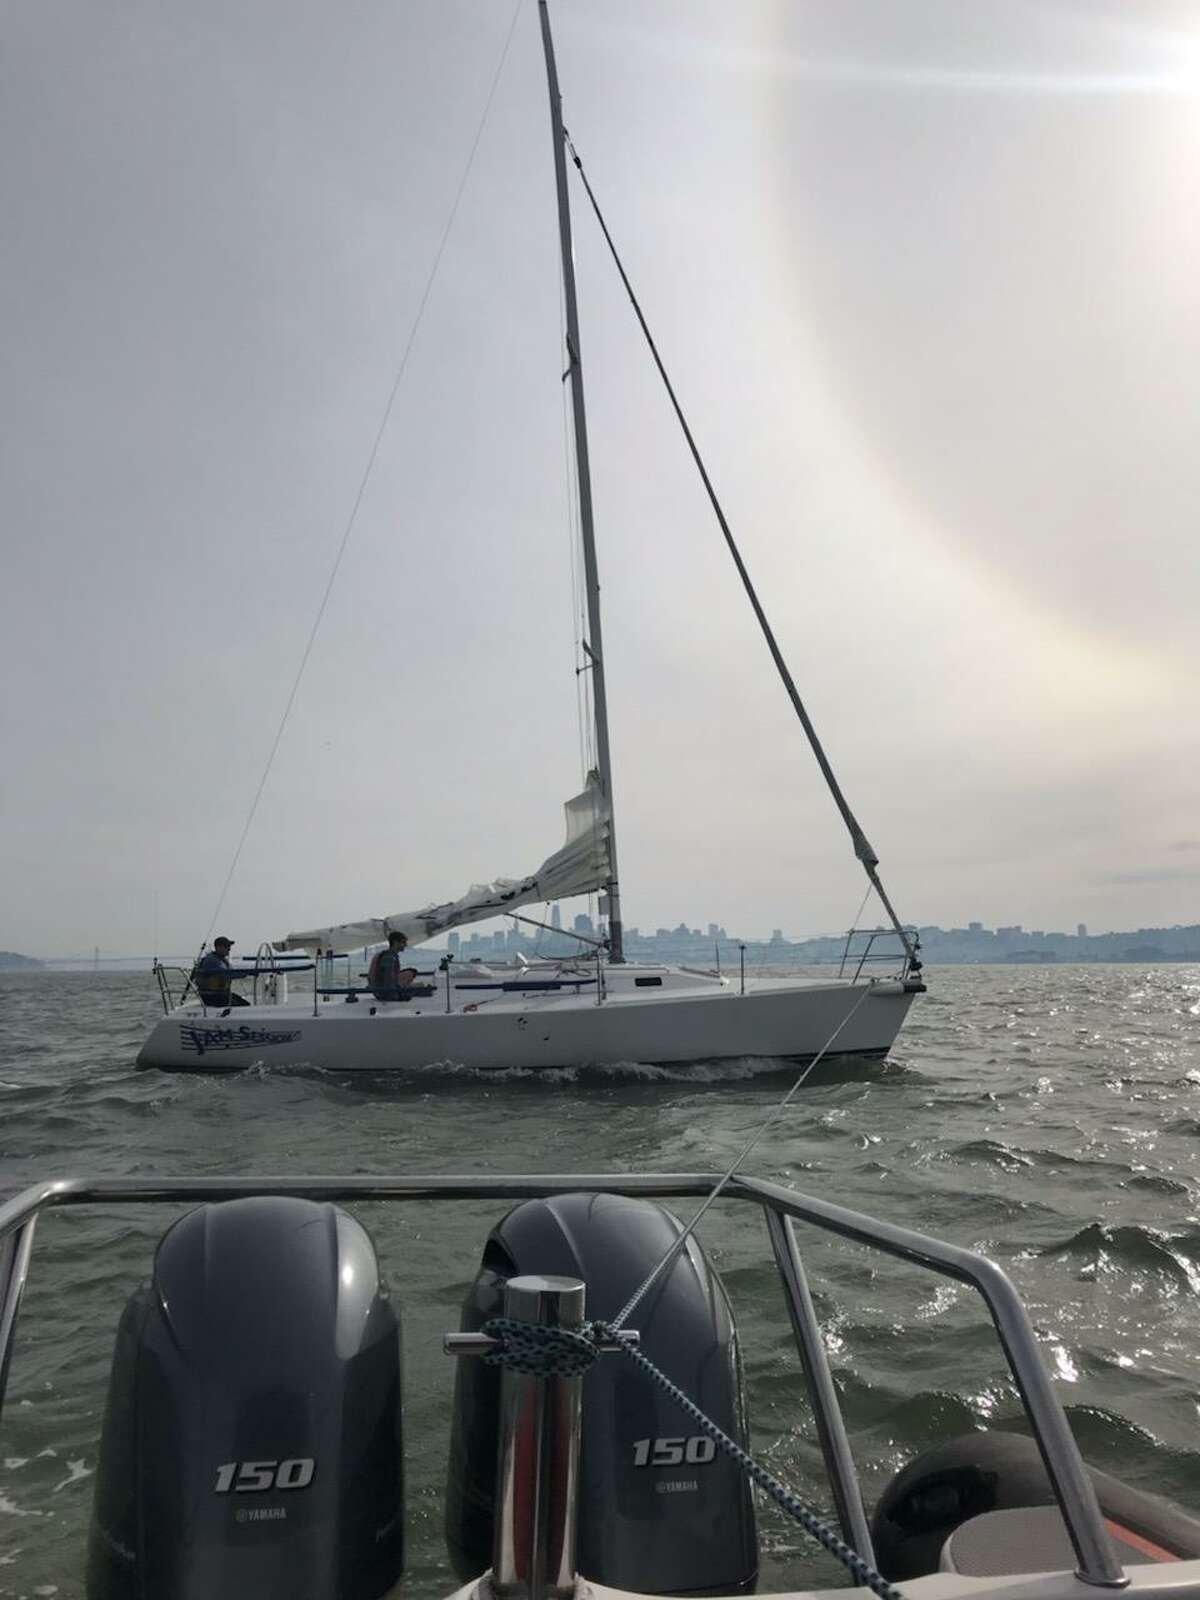 A view of the Jam Session J105 after it hit a whale during the Three Bridge Fiasco race on Saturday, Jan. 26, 2019.